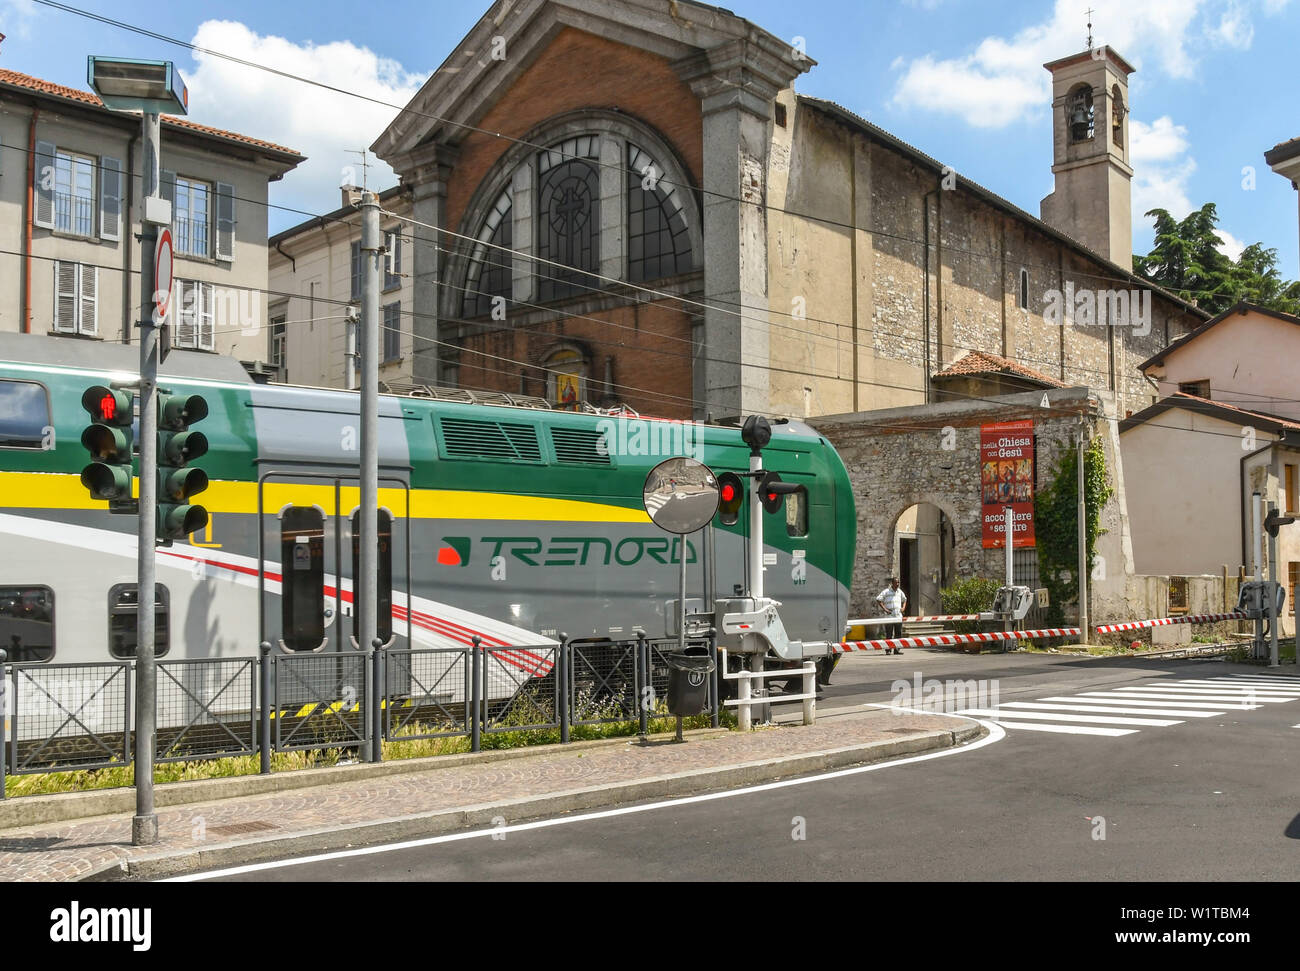 COMO, ITALY - JUNE 2019: Modern electric train passing over a road crossing as it departs from the town of Como on Lake Como Stock Photo